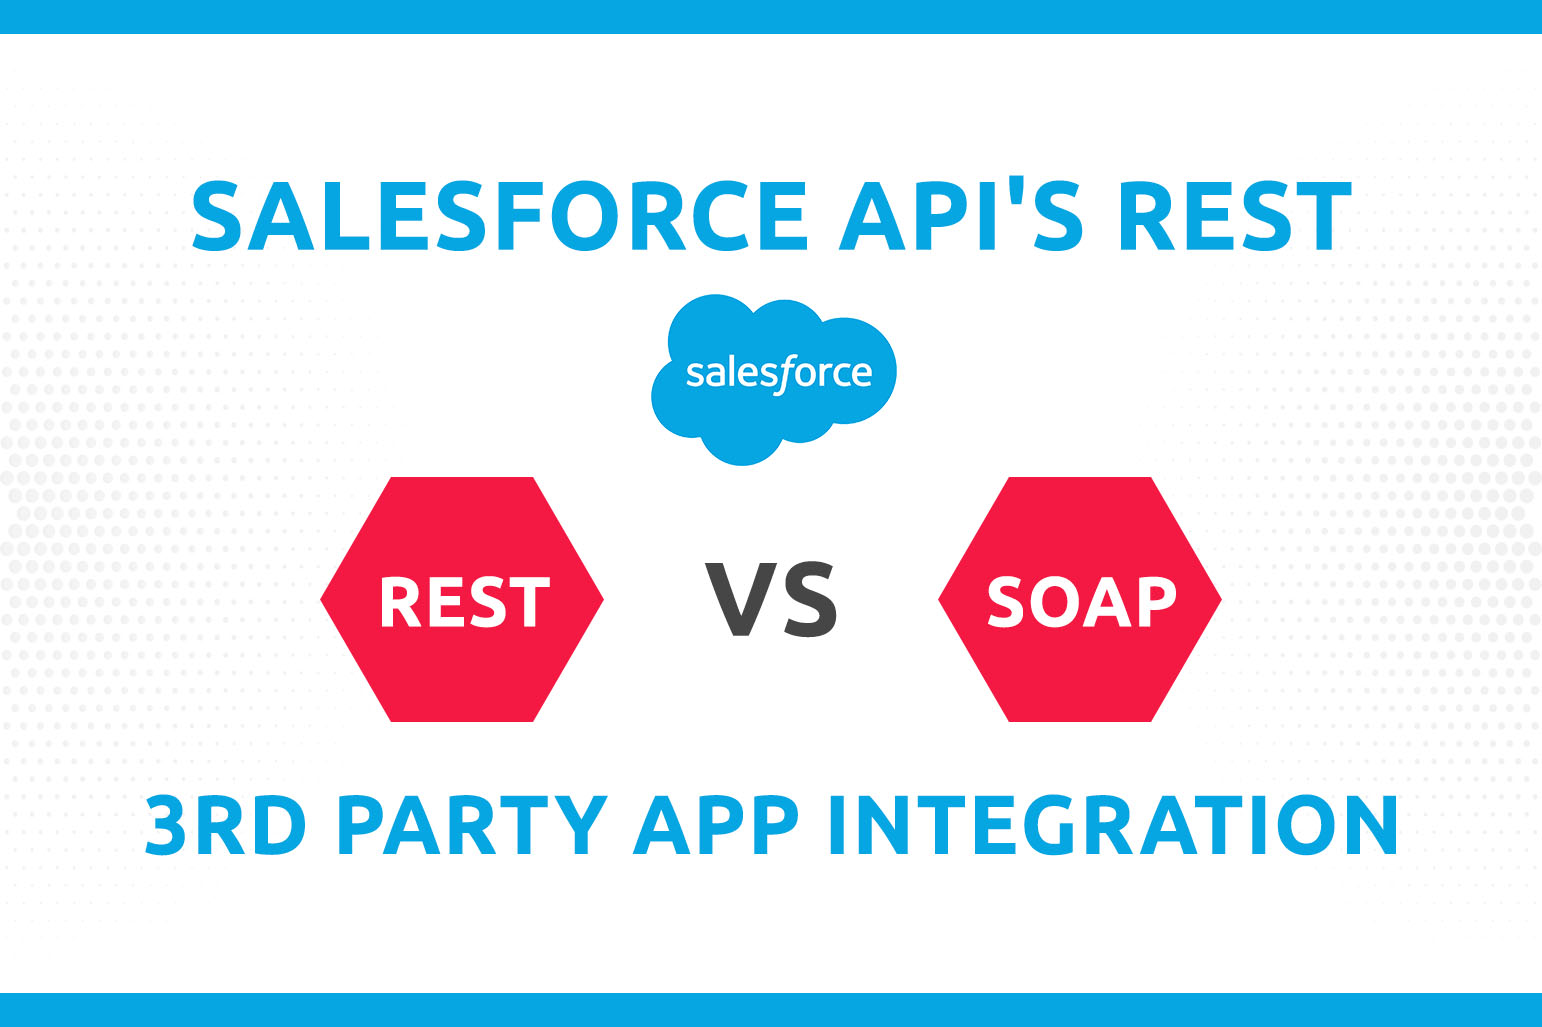 Le savon Rest Vs. Soap de l'API Salesforce permet l'intégration d'applications tierces